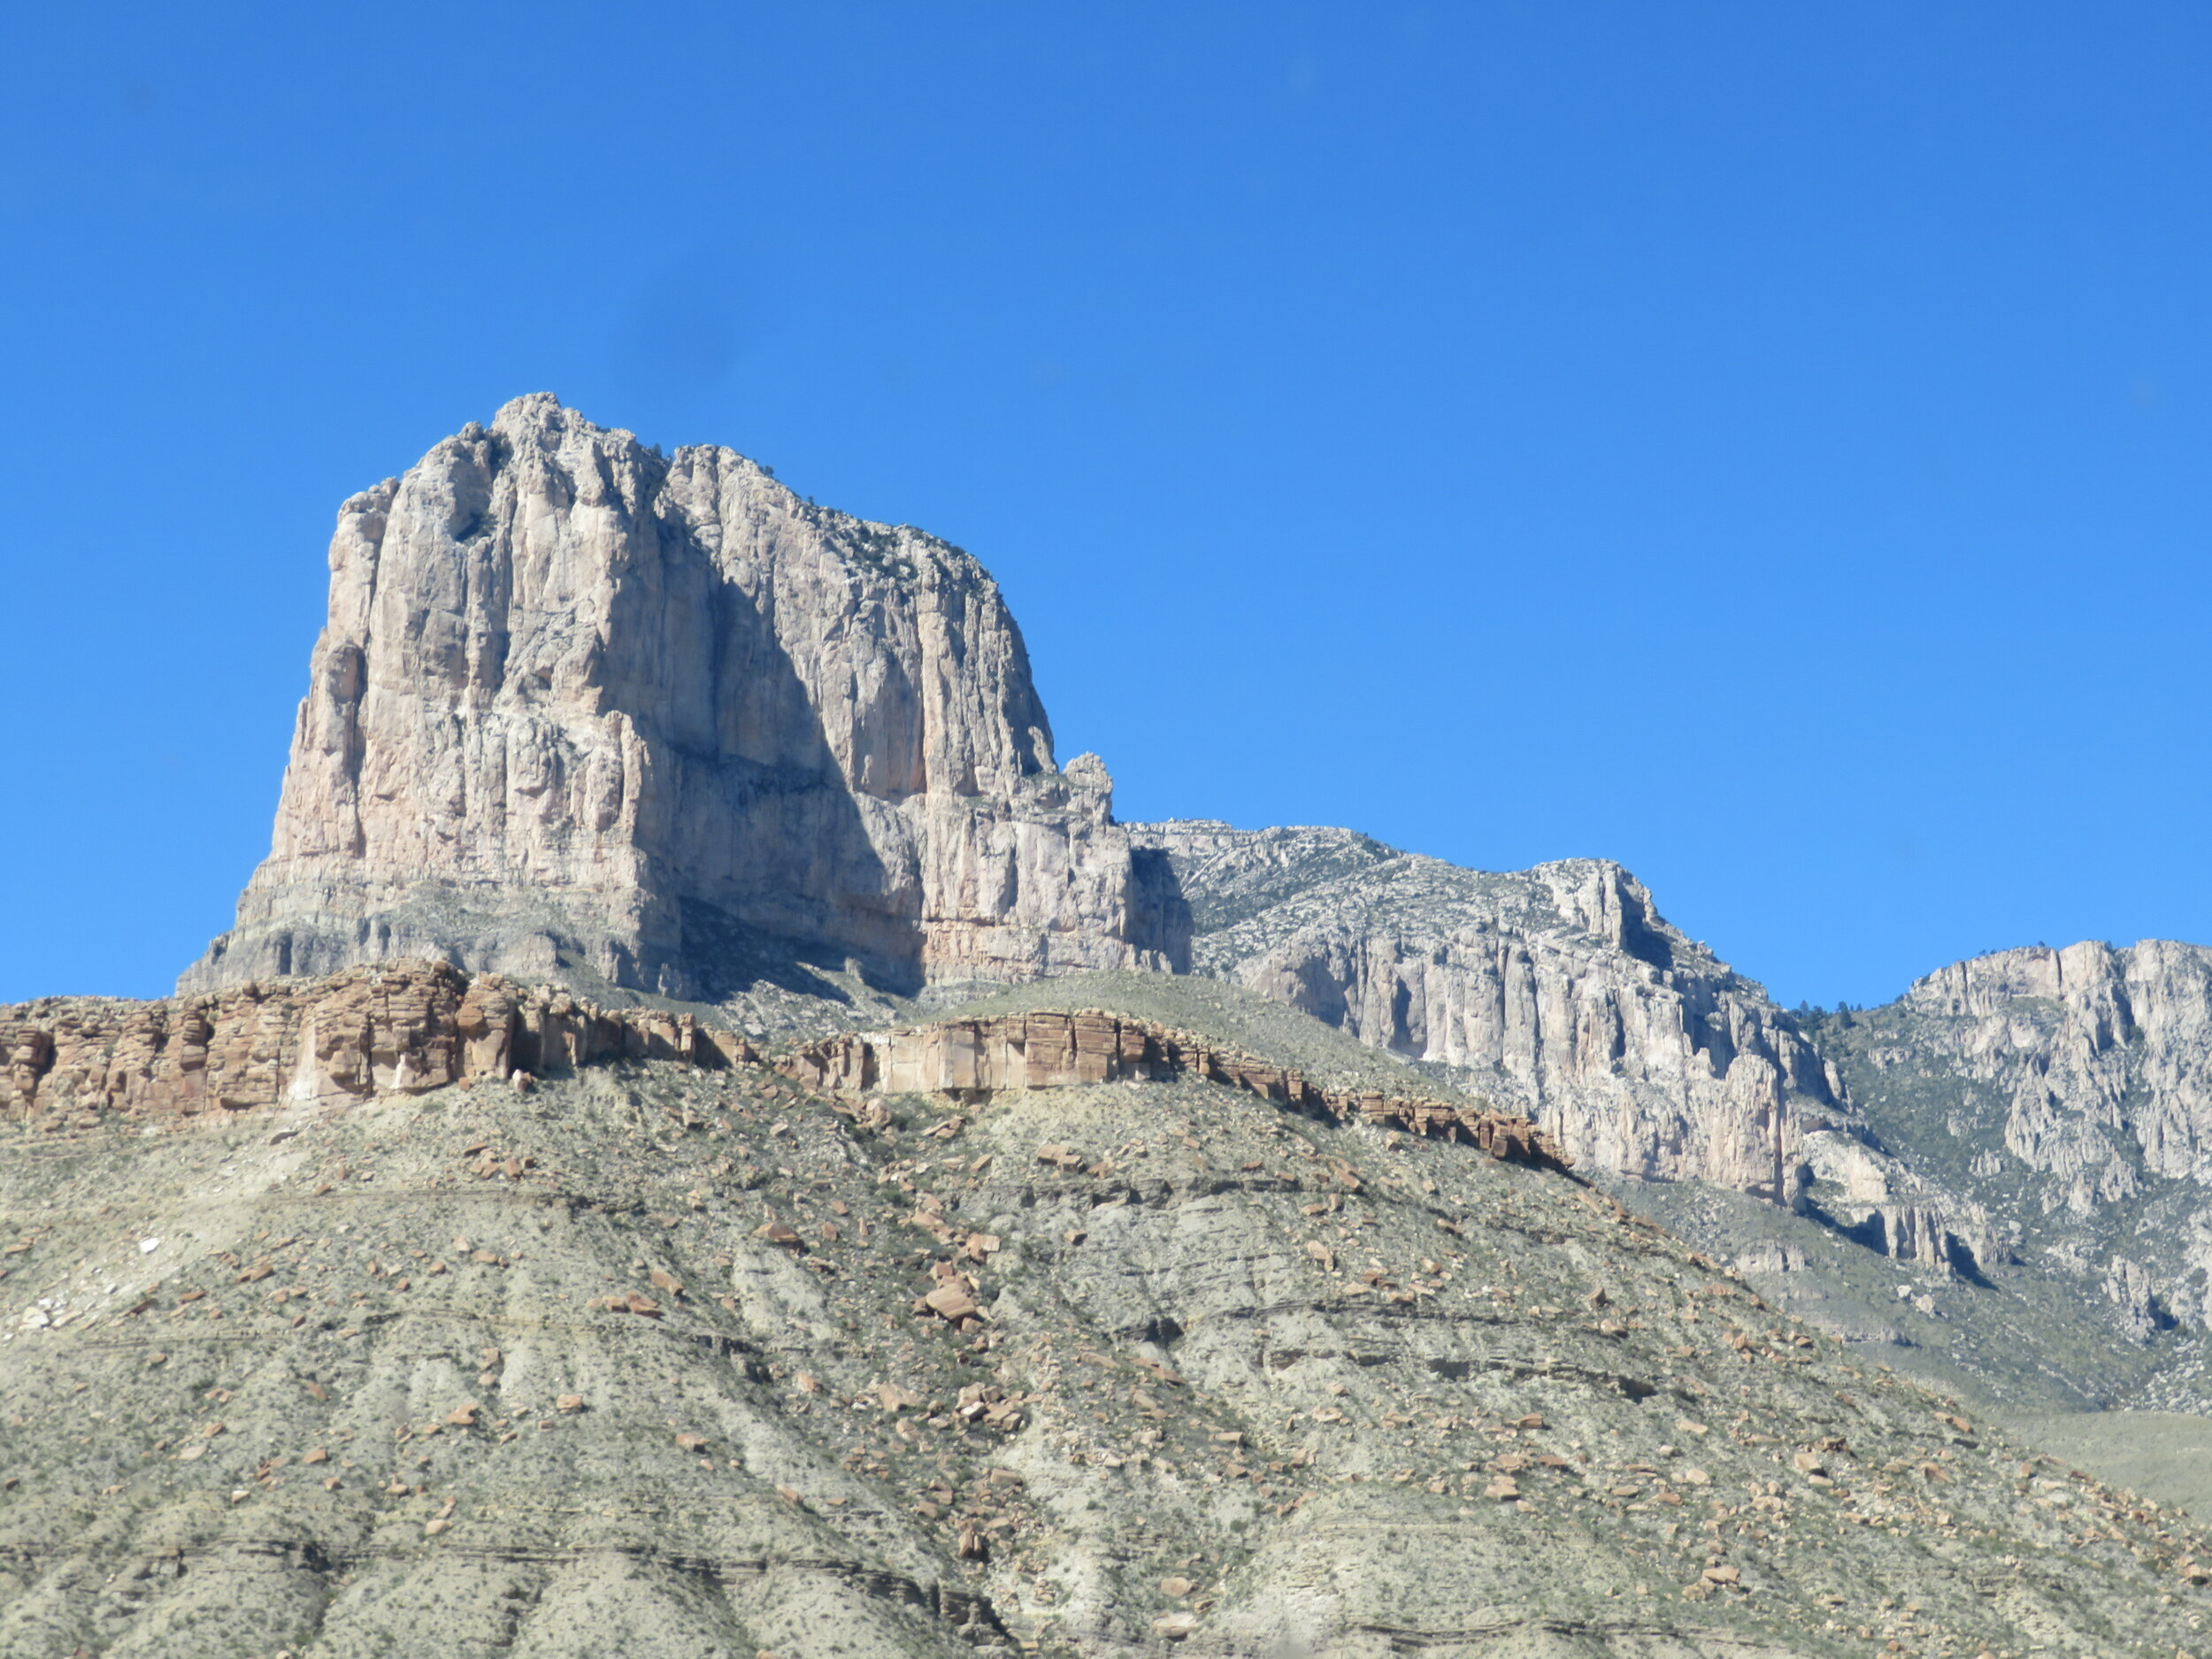 El Capitan - 5 miles away … has been a natural landmark to generations of travelers who have passed through this stark and arid land.